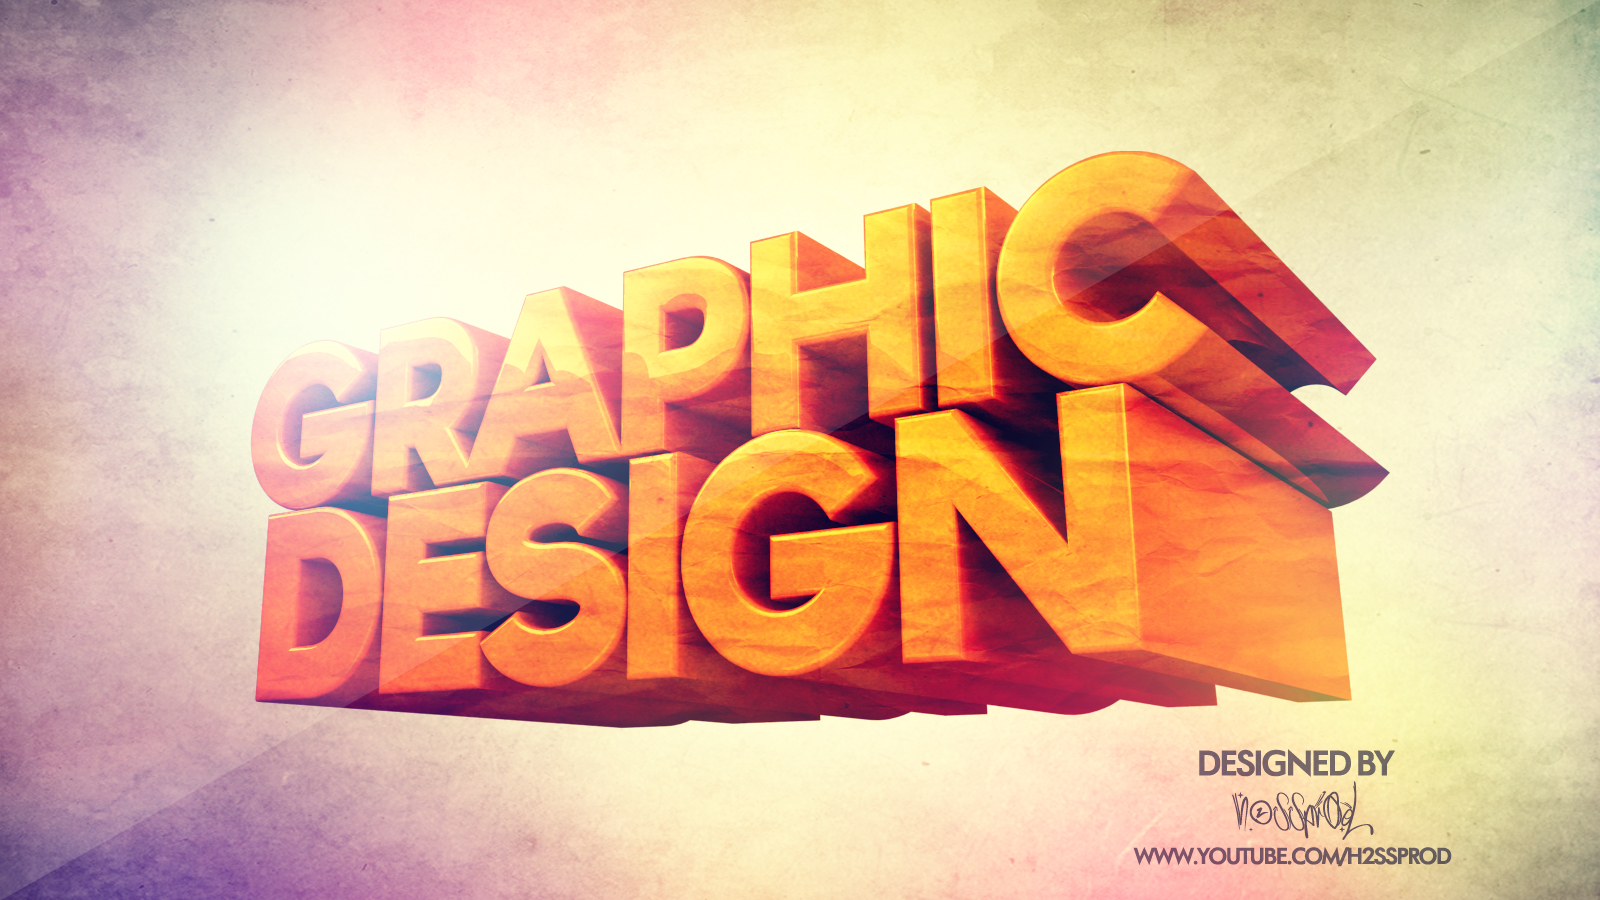 WALLPAPER-GRAPHIC-DESIGN-3D-BY-H2SSPROD by H2SSPROD on DeviantArt